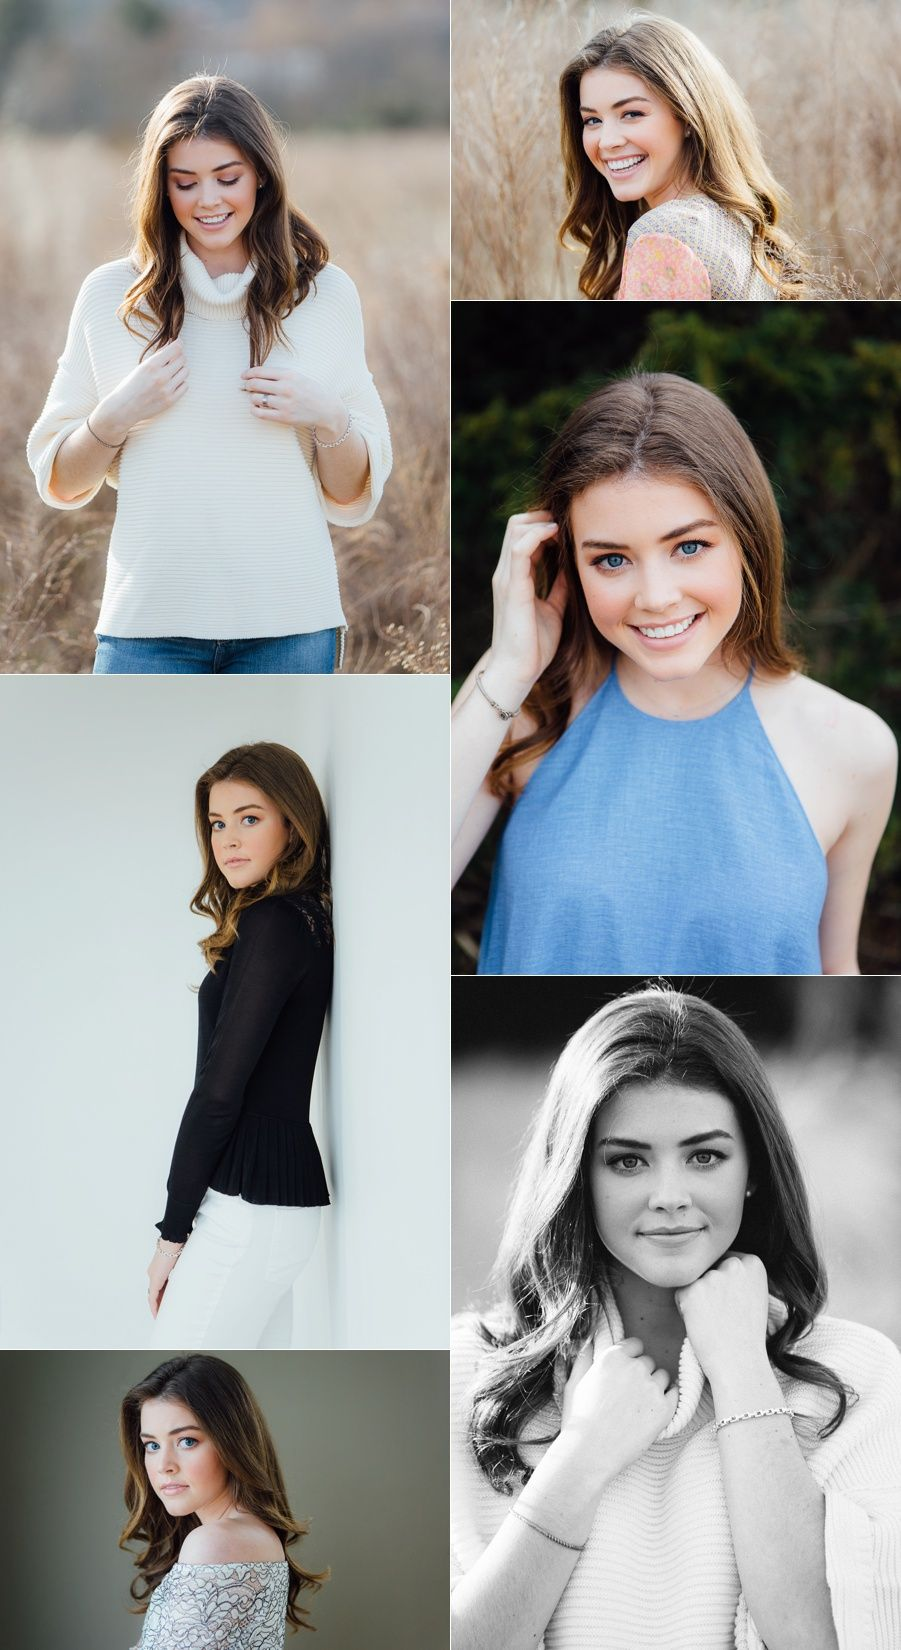 Sign up to master senior poses with senior portrait photographer